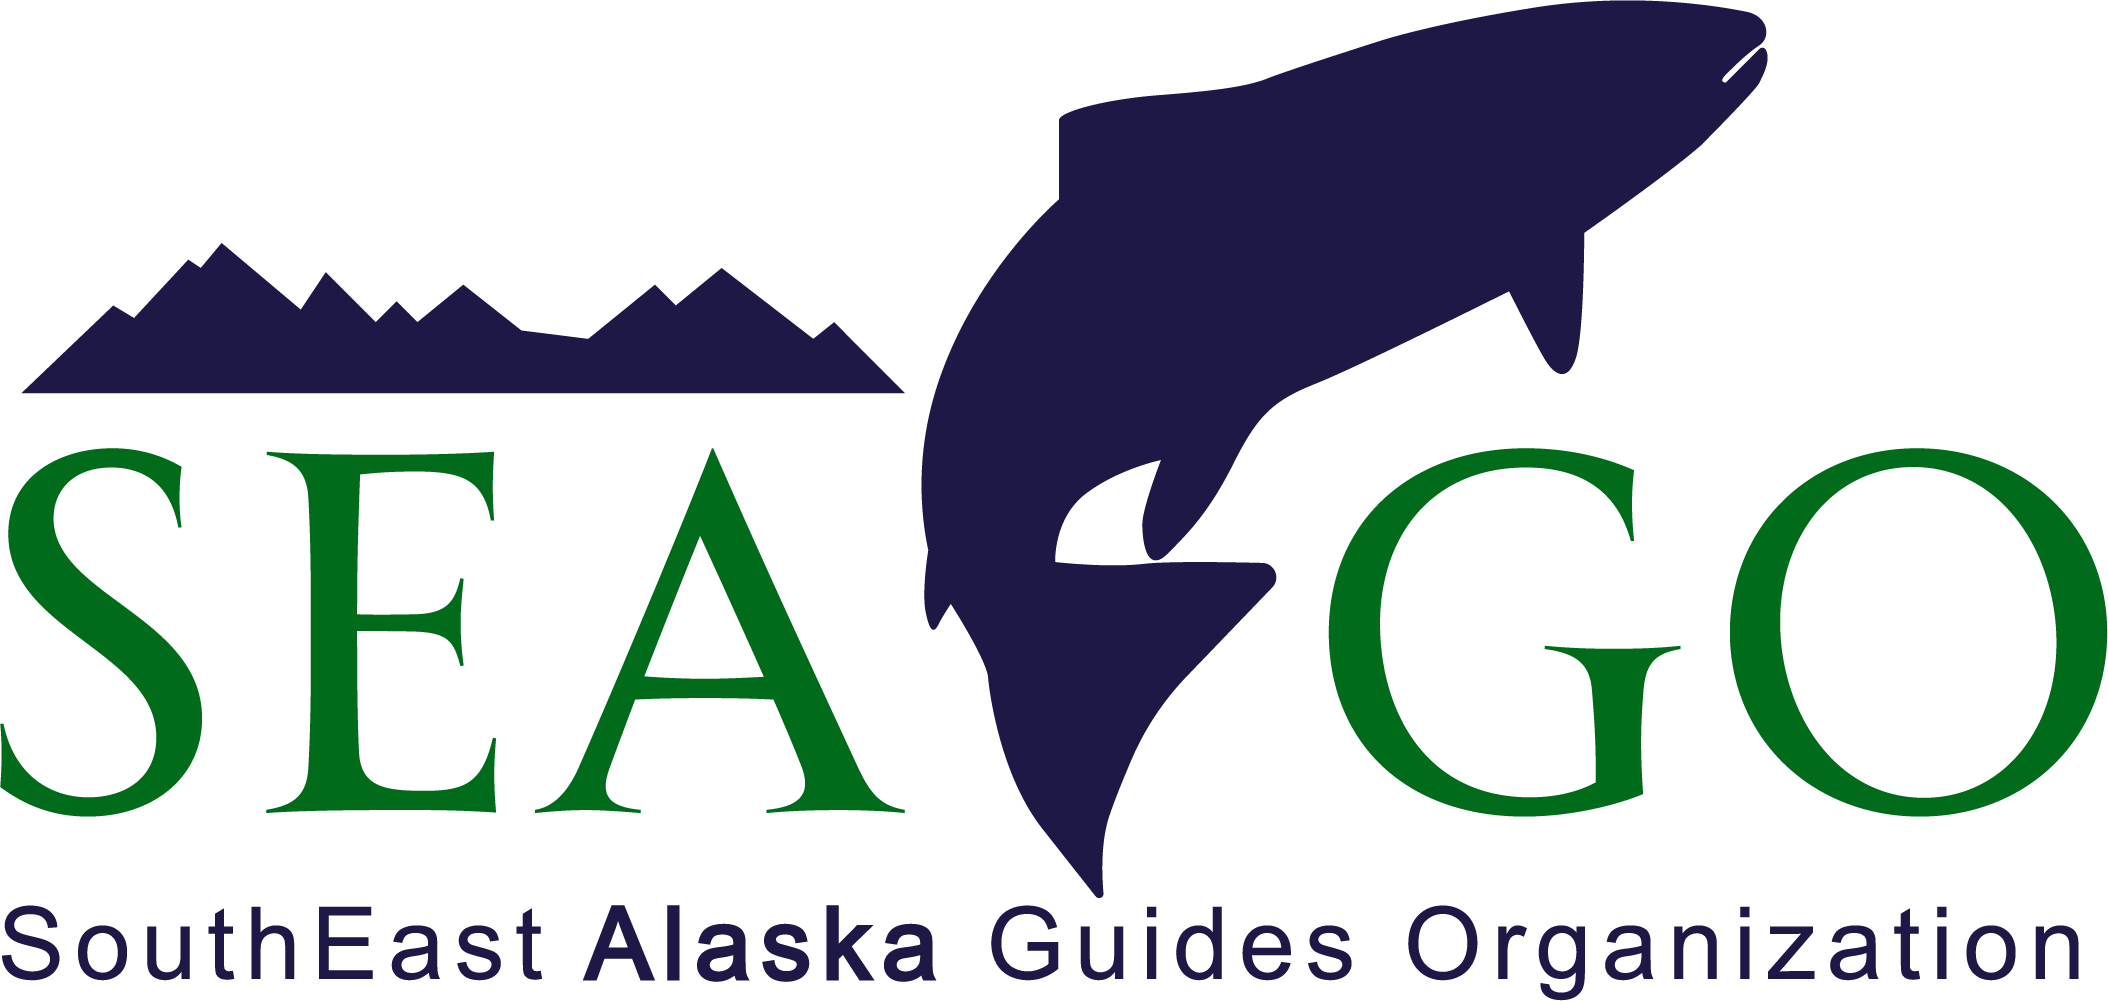 Southeast Alaska Guides Organization